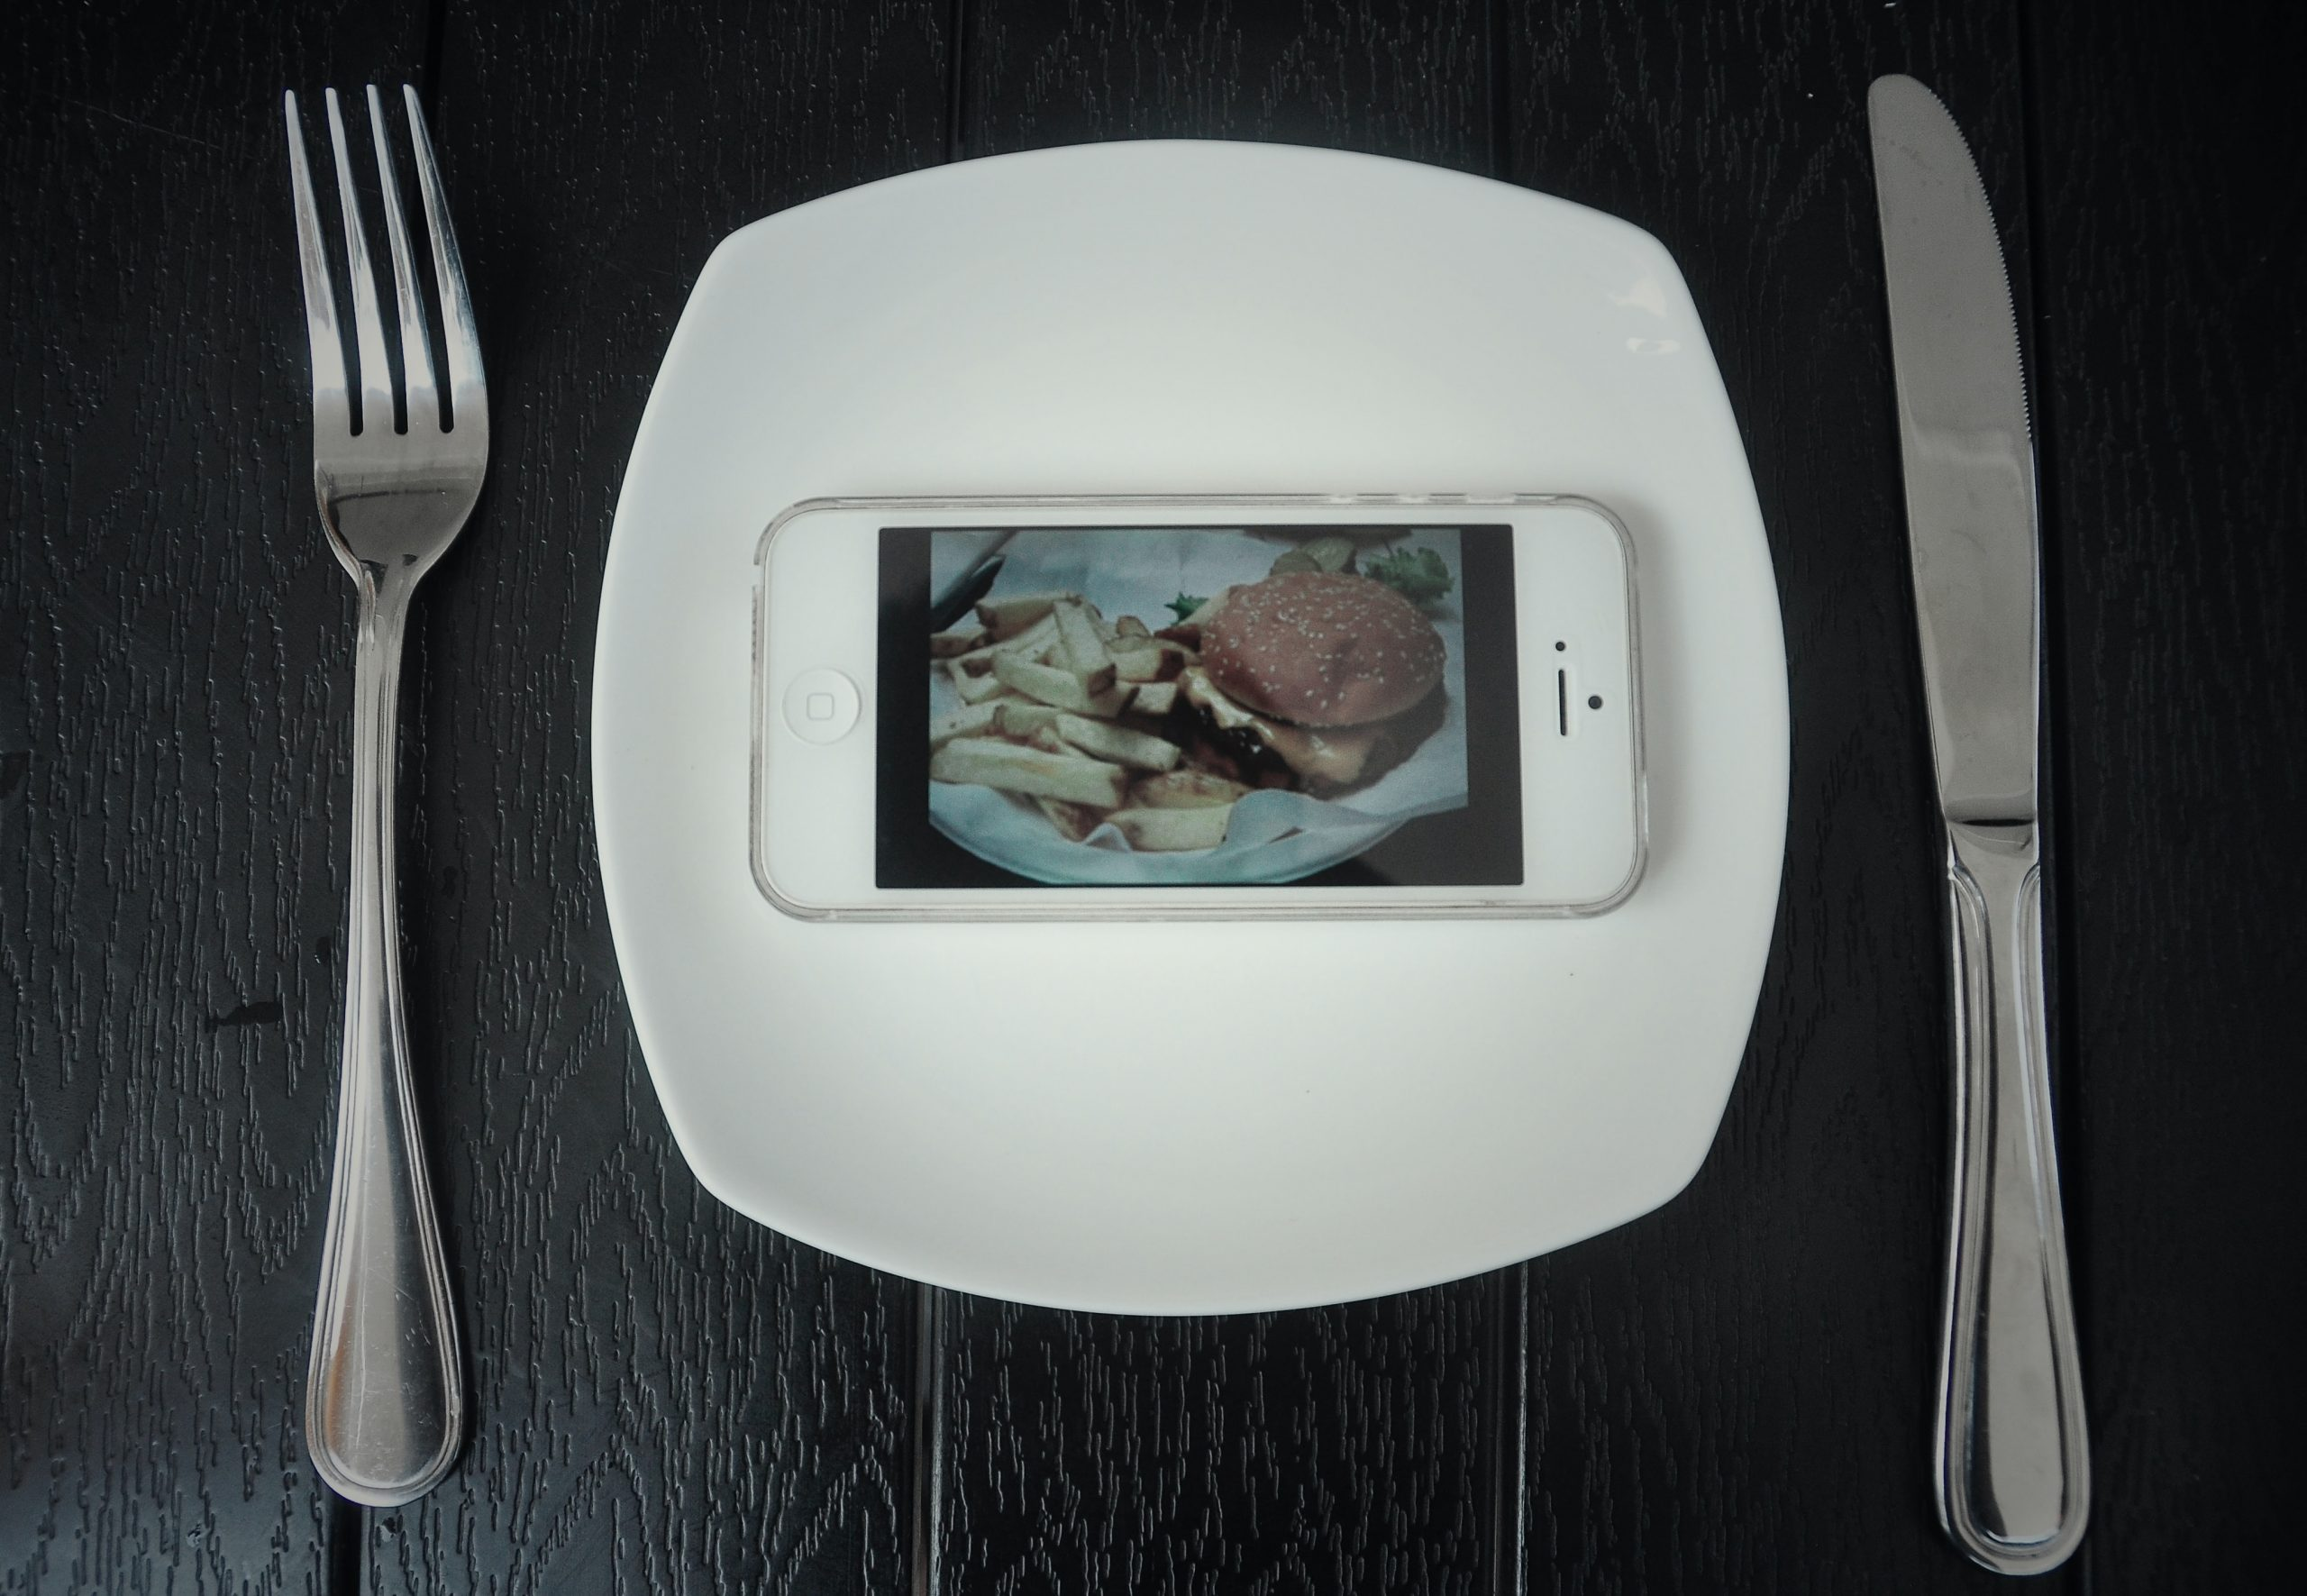 Augmented reality (AR) is the future of Restaurant Menu?